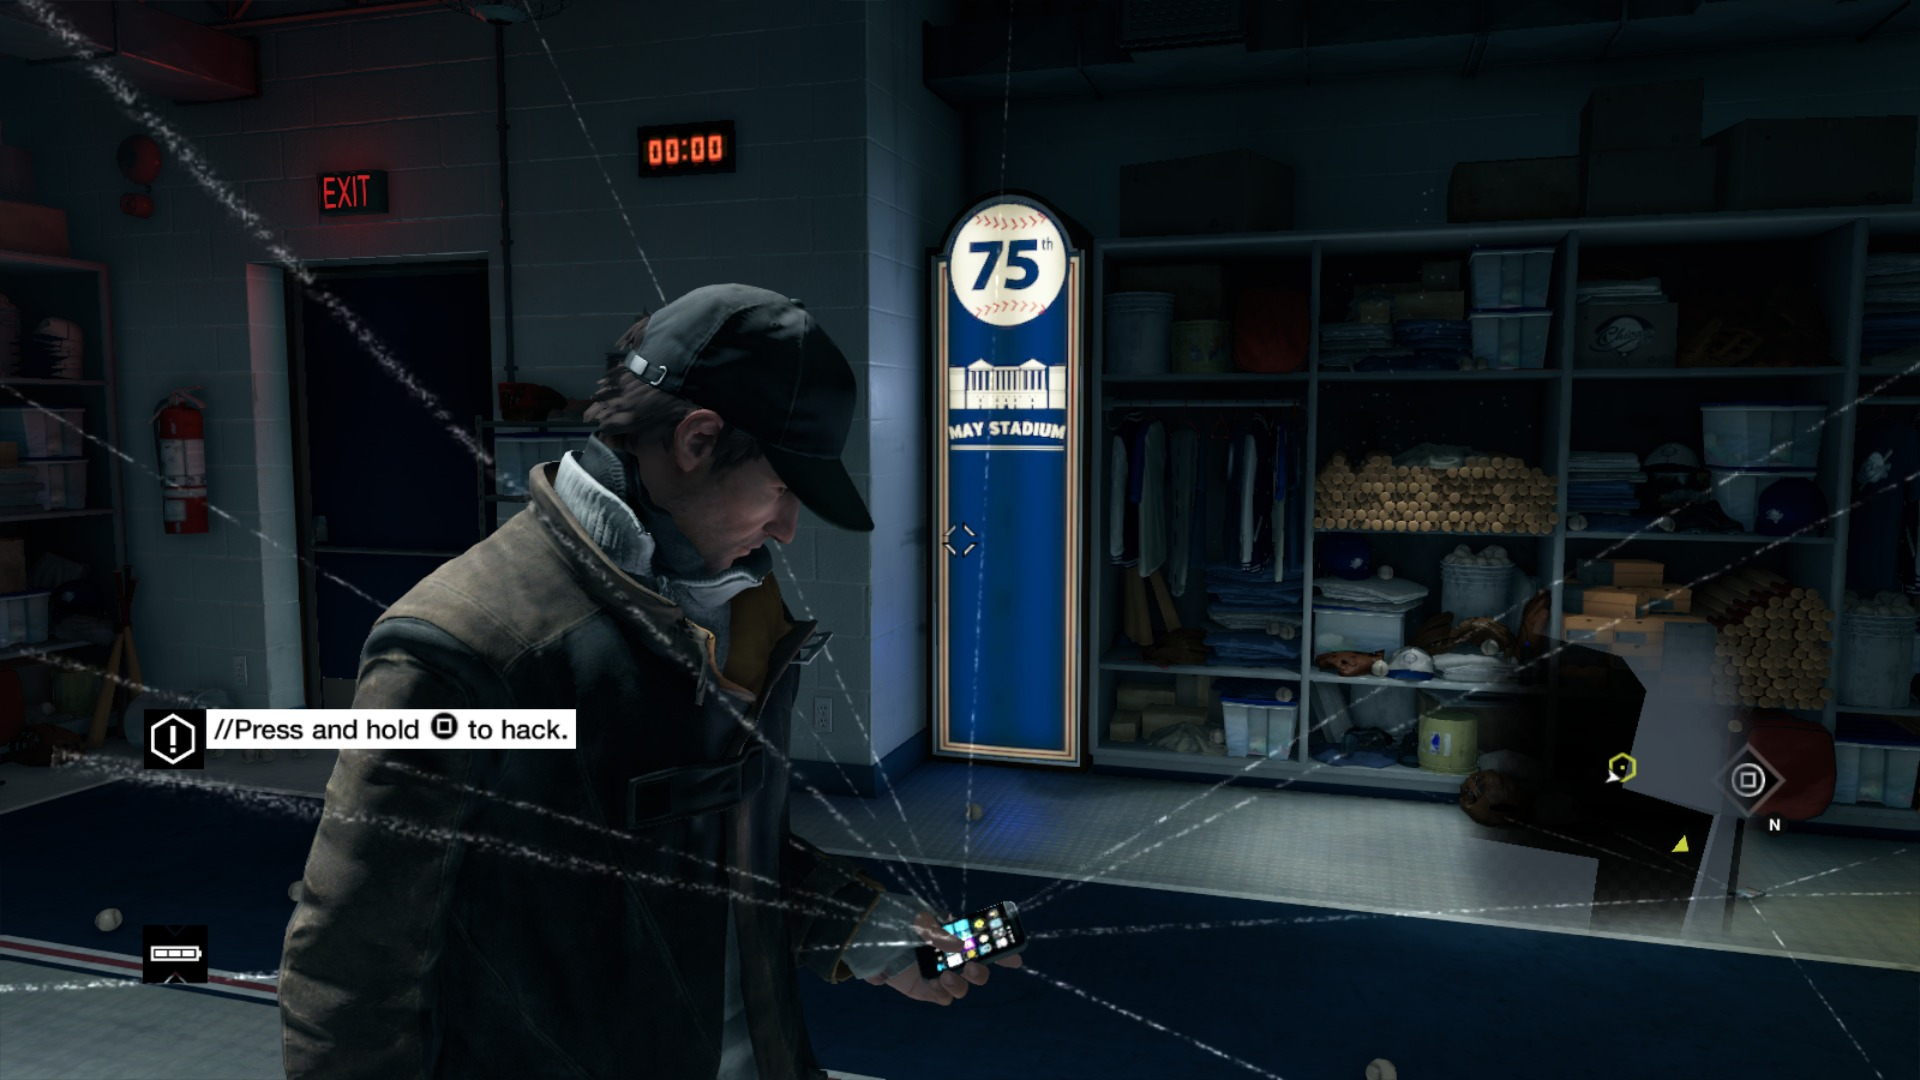 WATCH_DOGS™_20140527181426